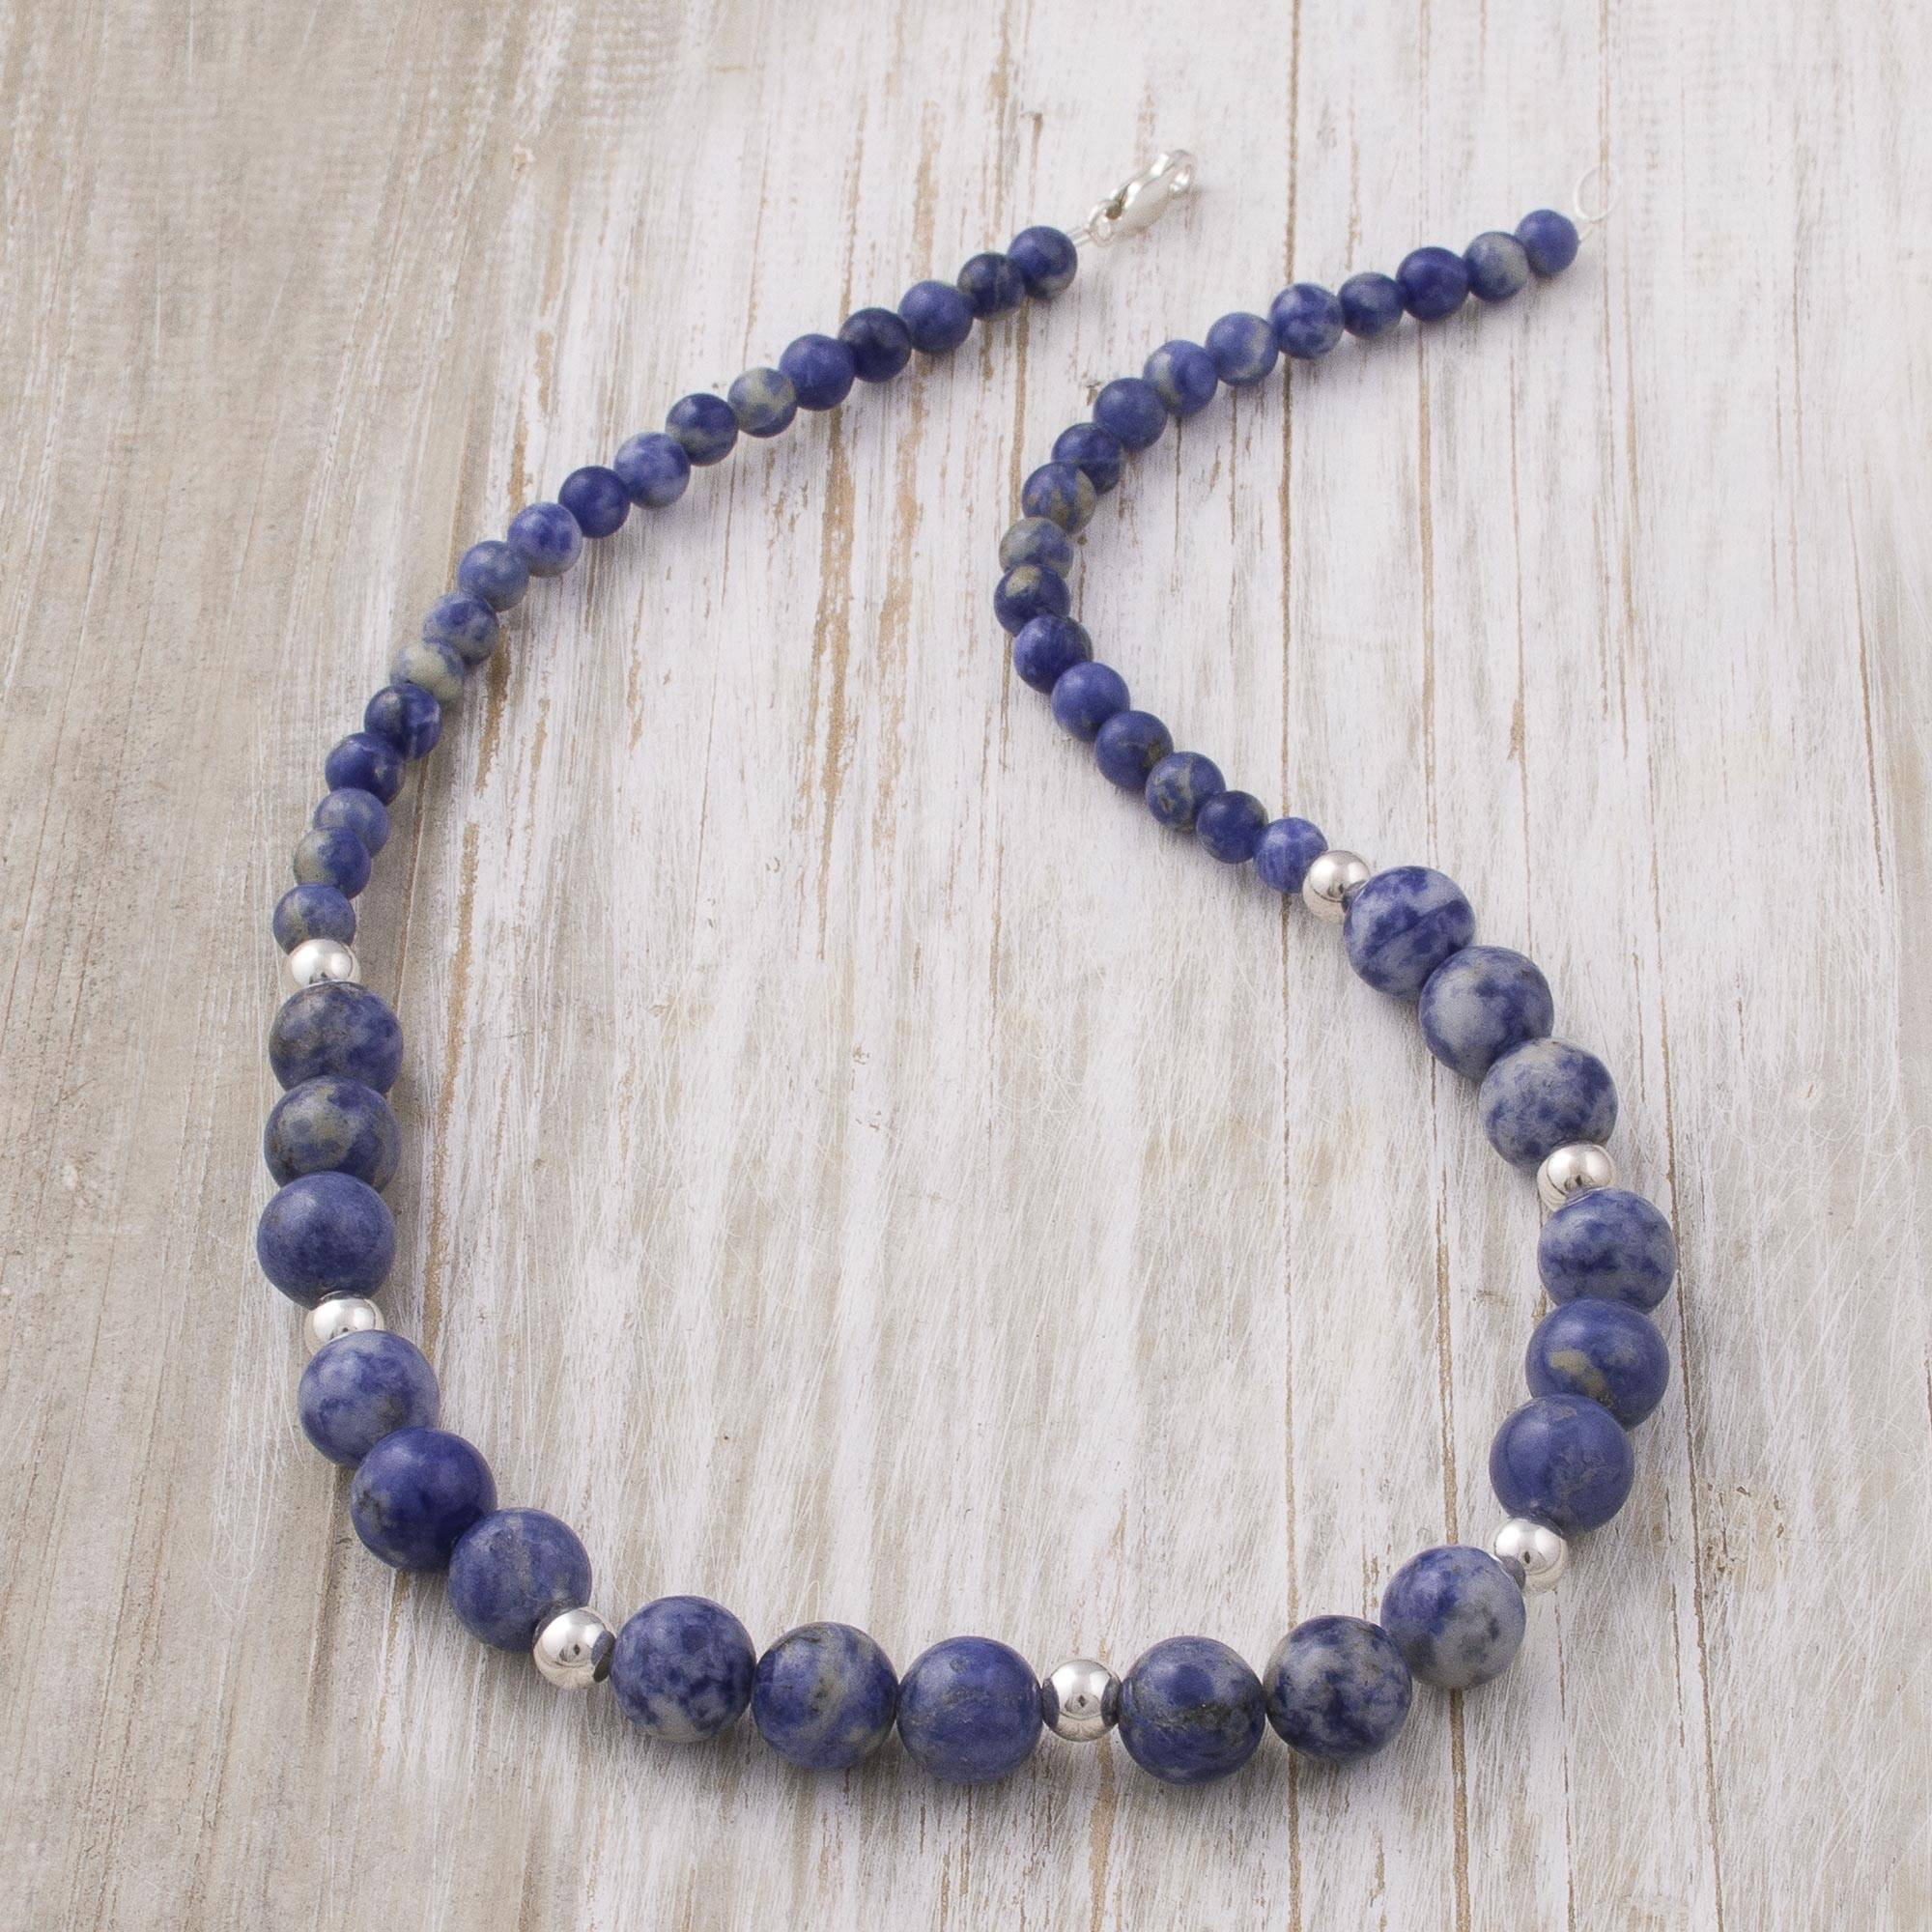 c40e295f6d62d Handcrafted Sodalite and Sterling Silver Bead Necklace, 'Falling Water'